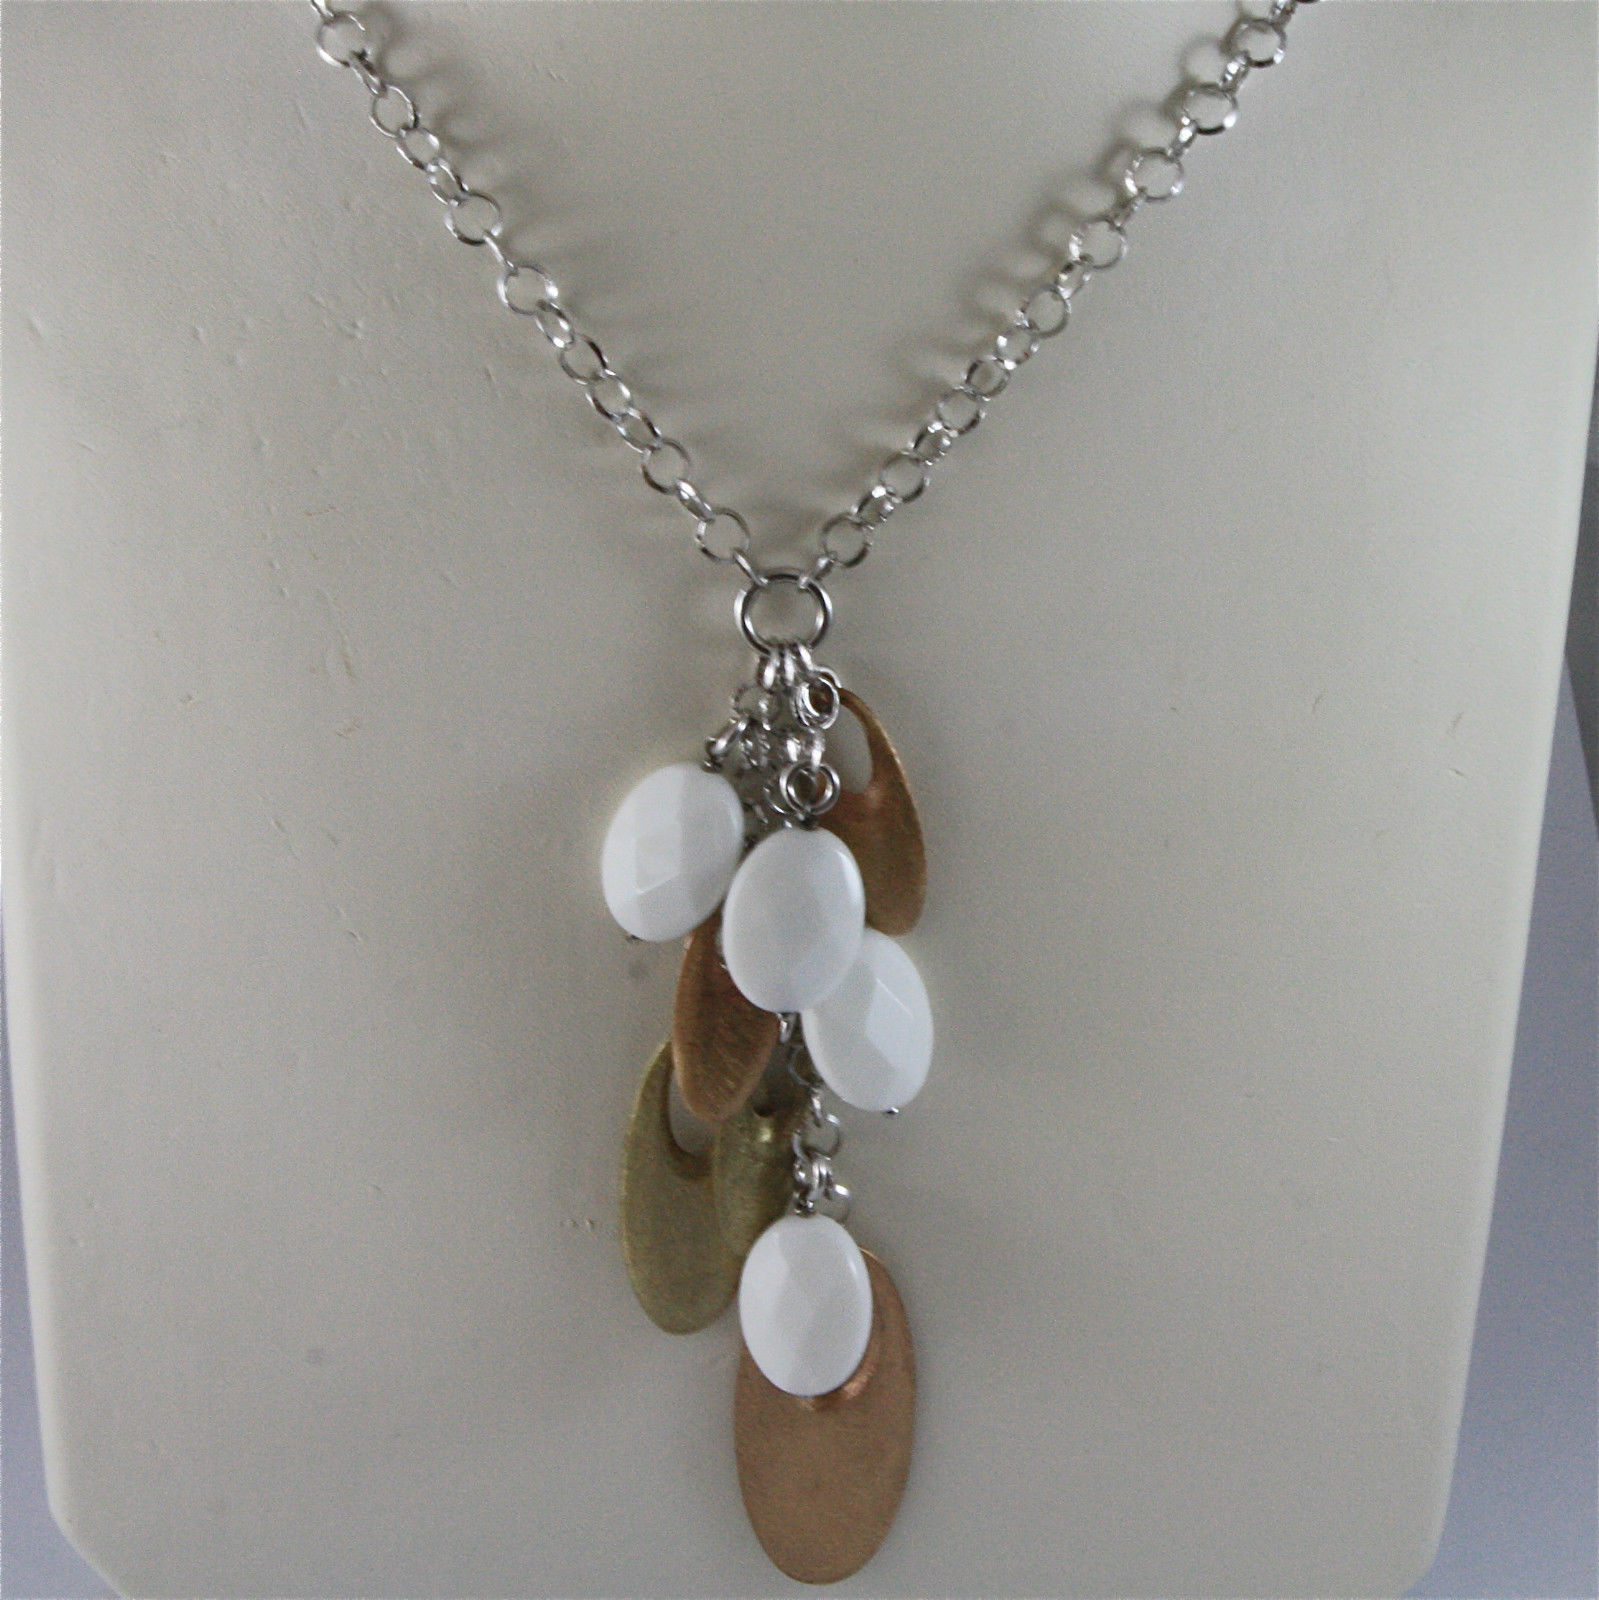 .925 SILVER RHODIUM NECKLACE 17,72 In, WHITE AGATE, GOLD PLT OVAL PENDANTS.